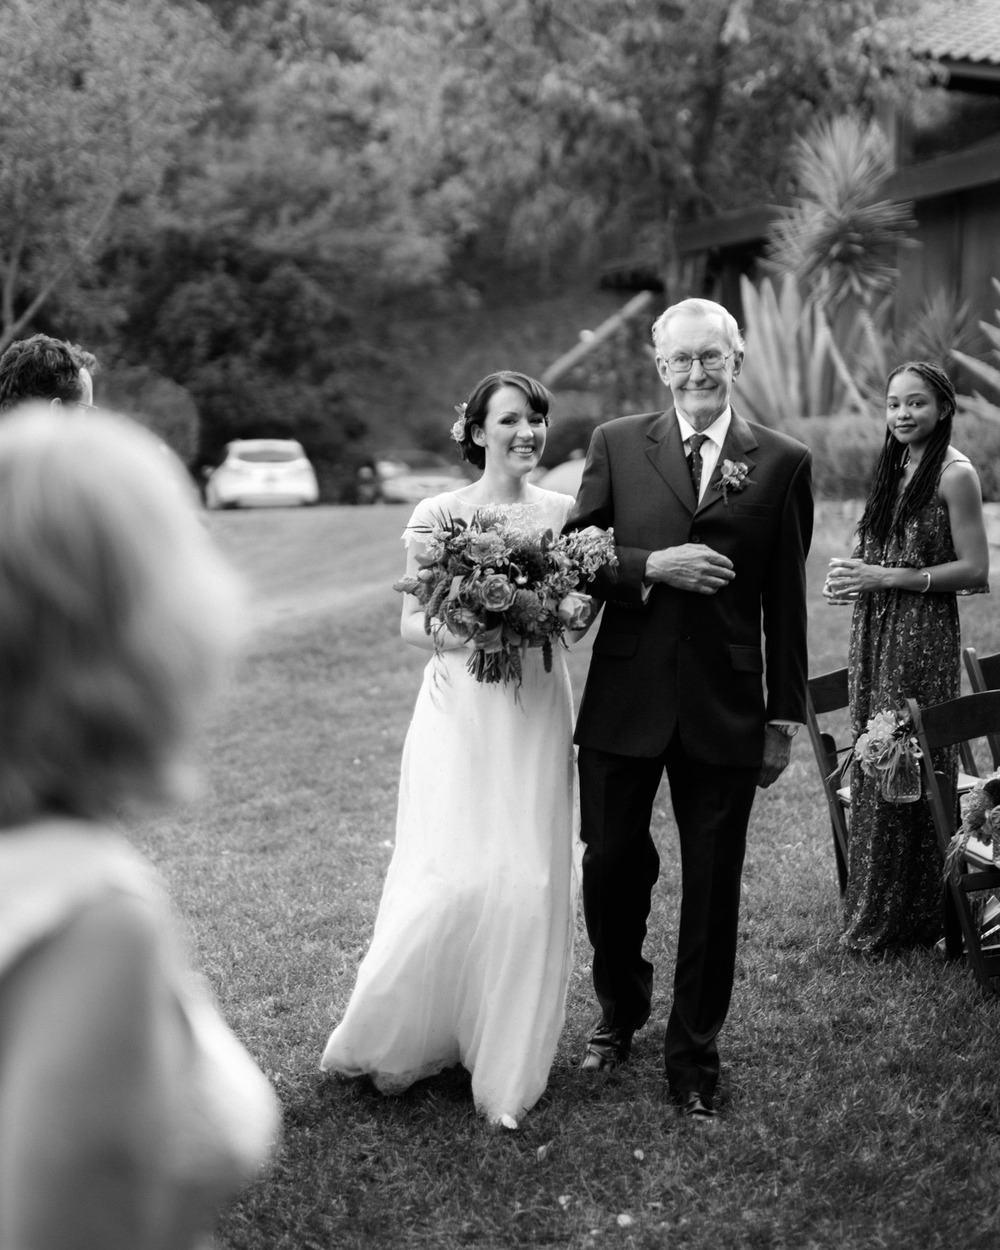 Ojai Wedding Photographer, Calliote Canyon Wedding - The Gathering Season x weareleoandkat 033.JPG